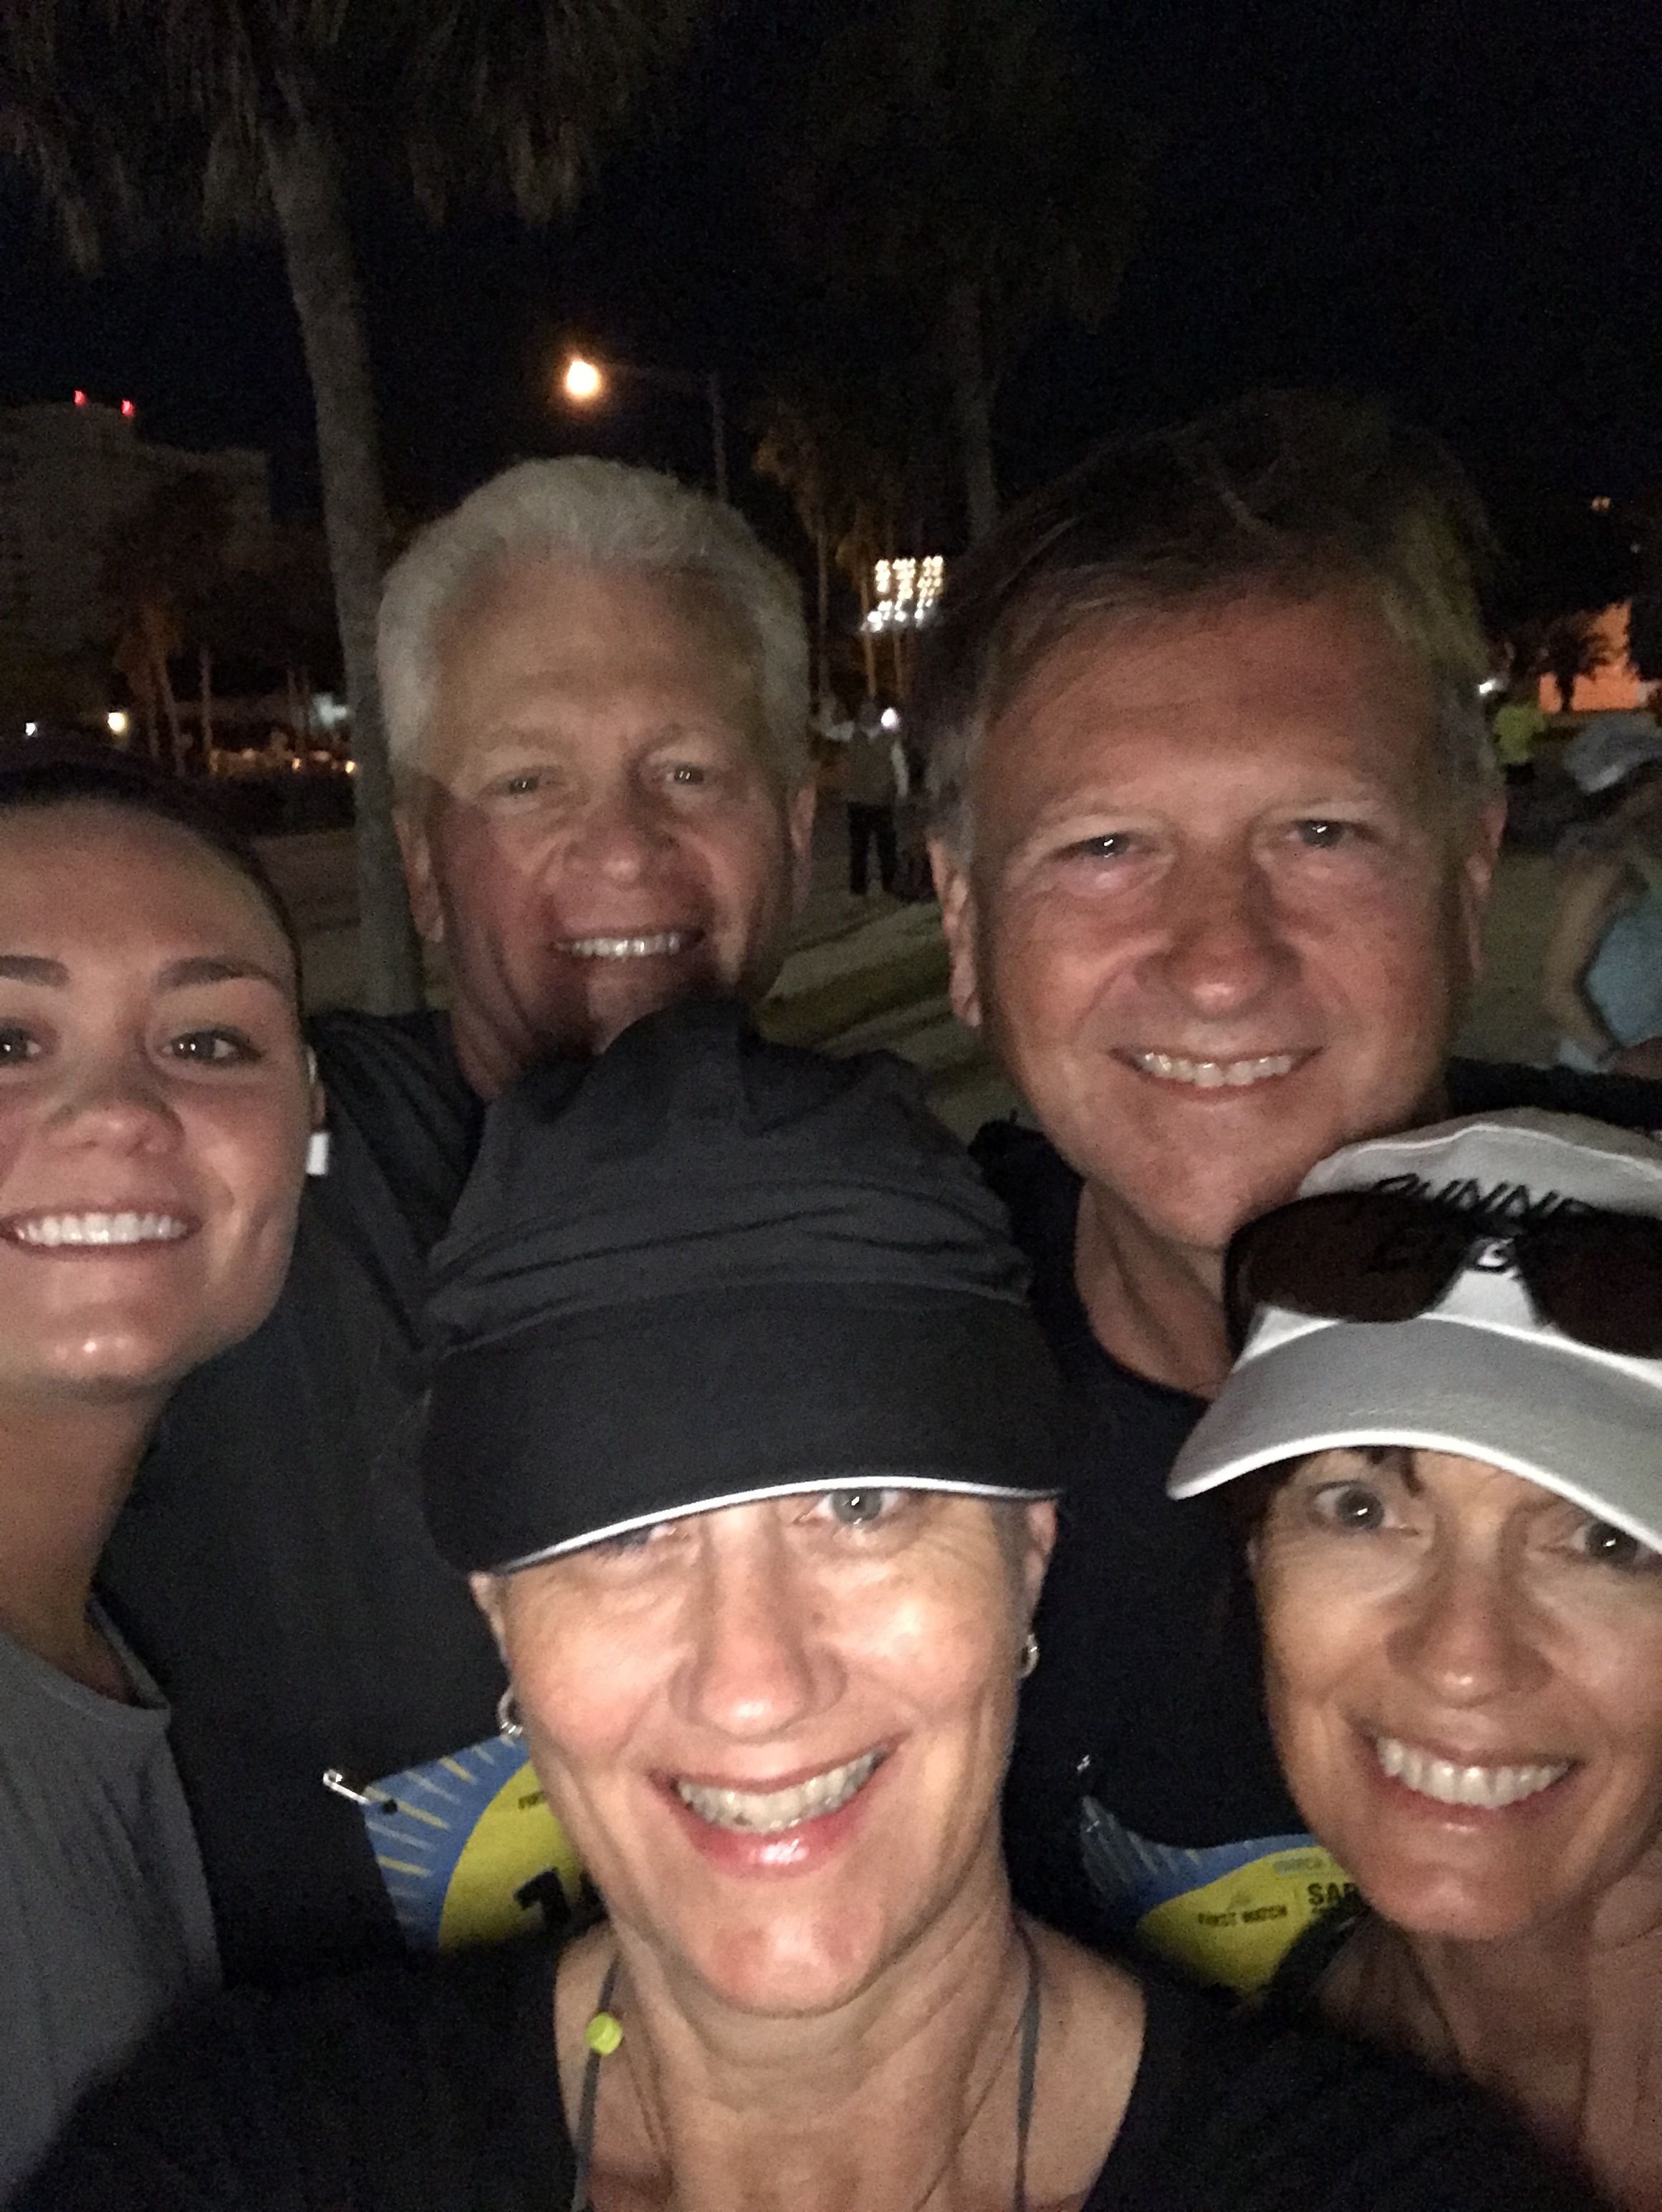 6:40 a.m. just before the start of the 1/2 marathon